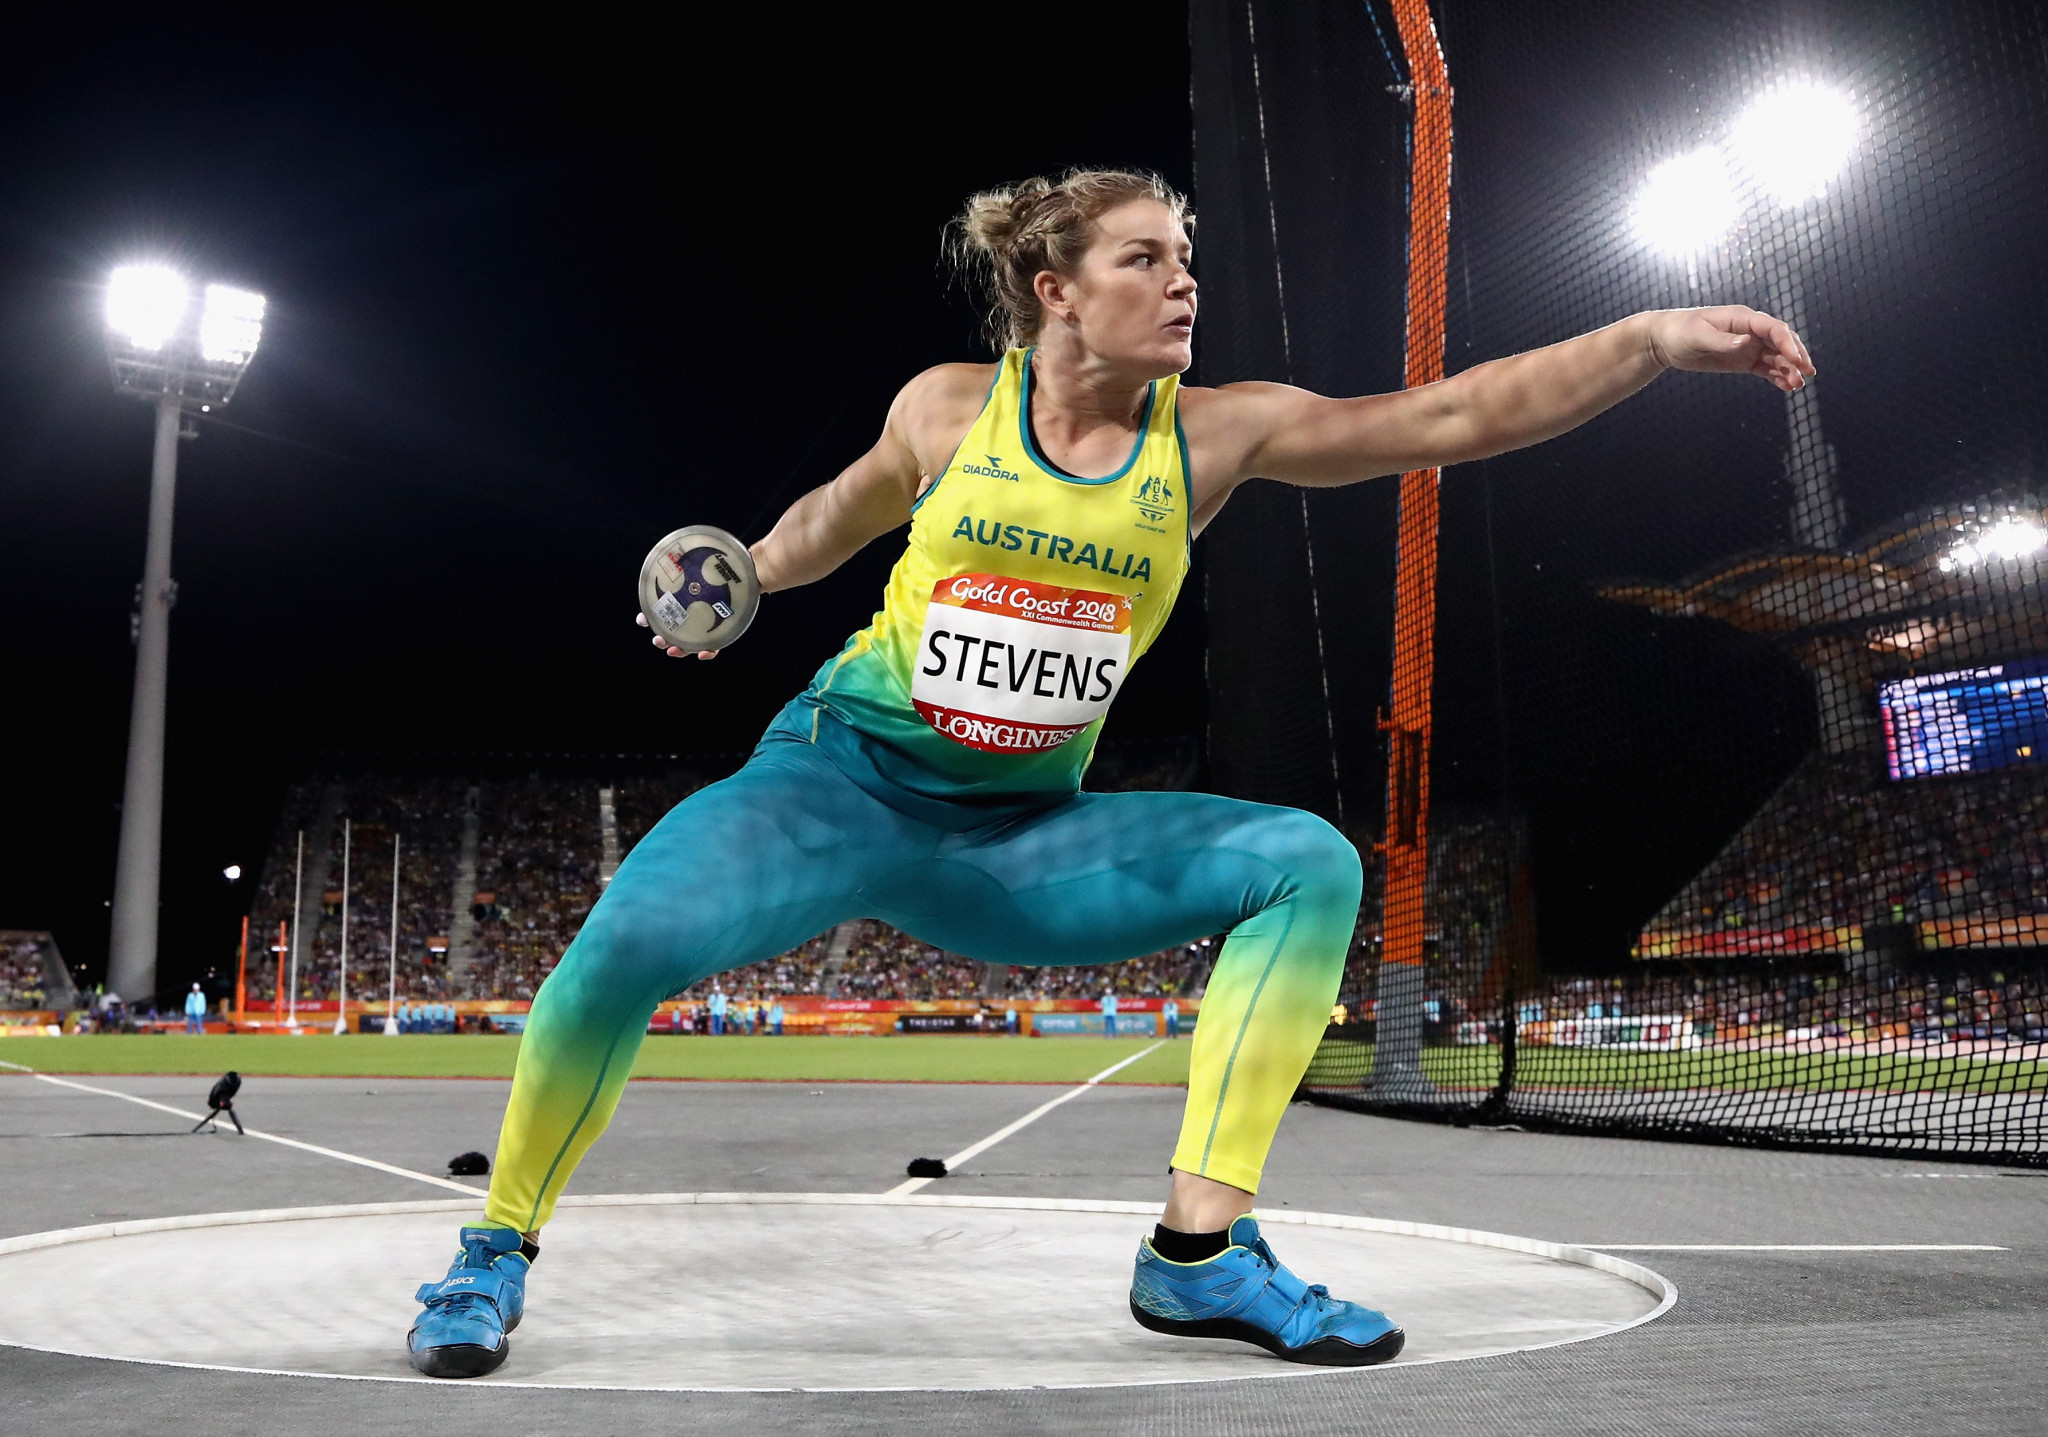 Dani Stevens is set to feature at the Olympics for a fourth time ©Getty Images